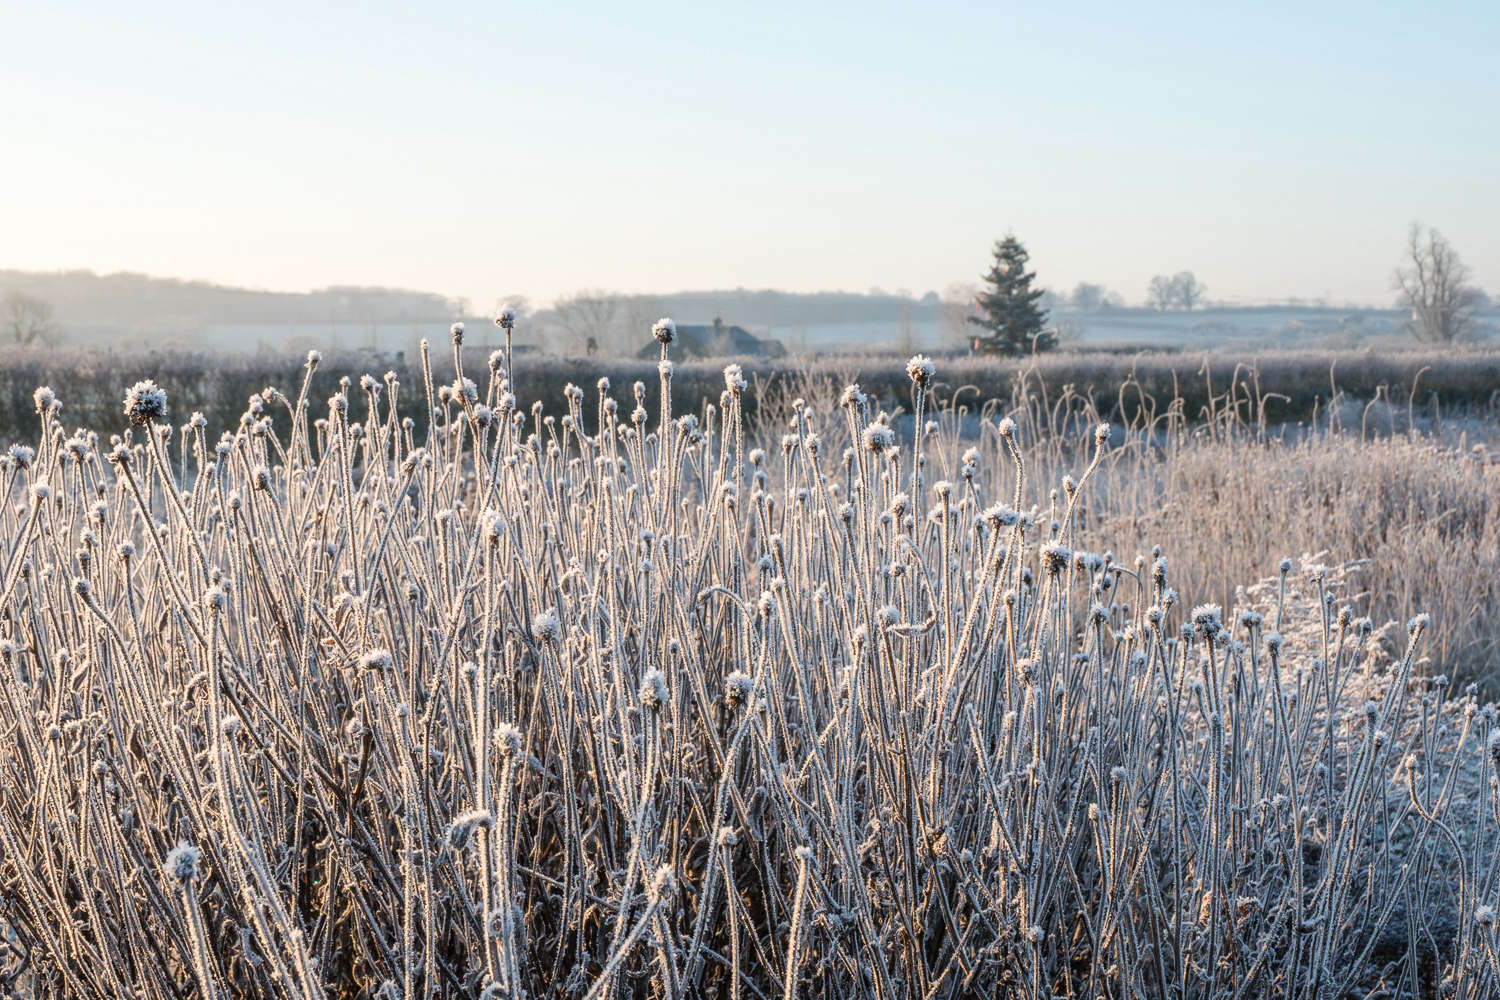 Frosted seed heads of Echinacea pallida - Oudolf Field, Hauser and Wirth Somerset